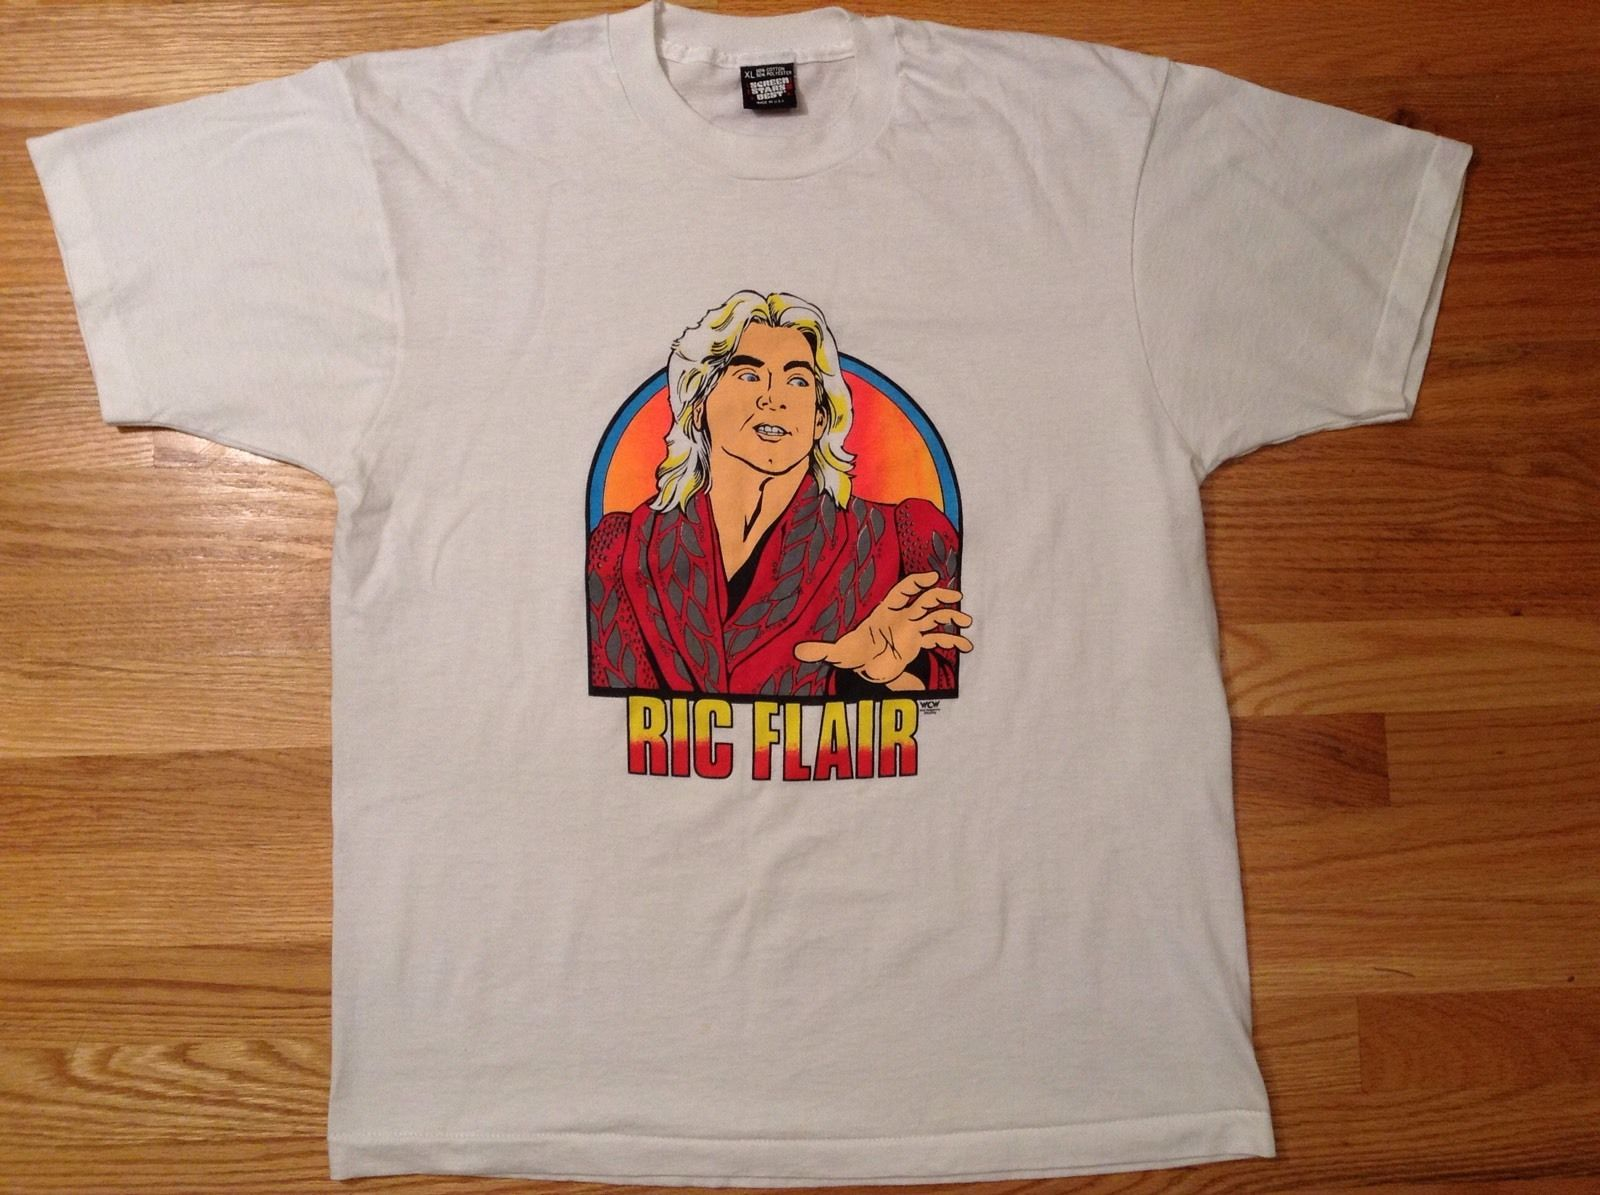 Ric Flair vintage shirt looks like Greg Valentine